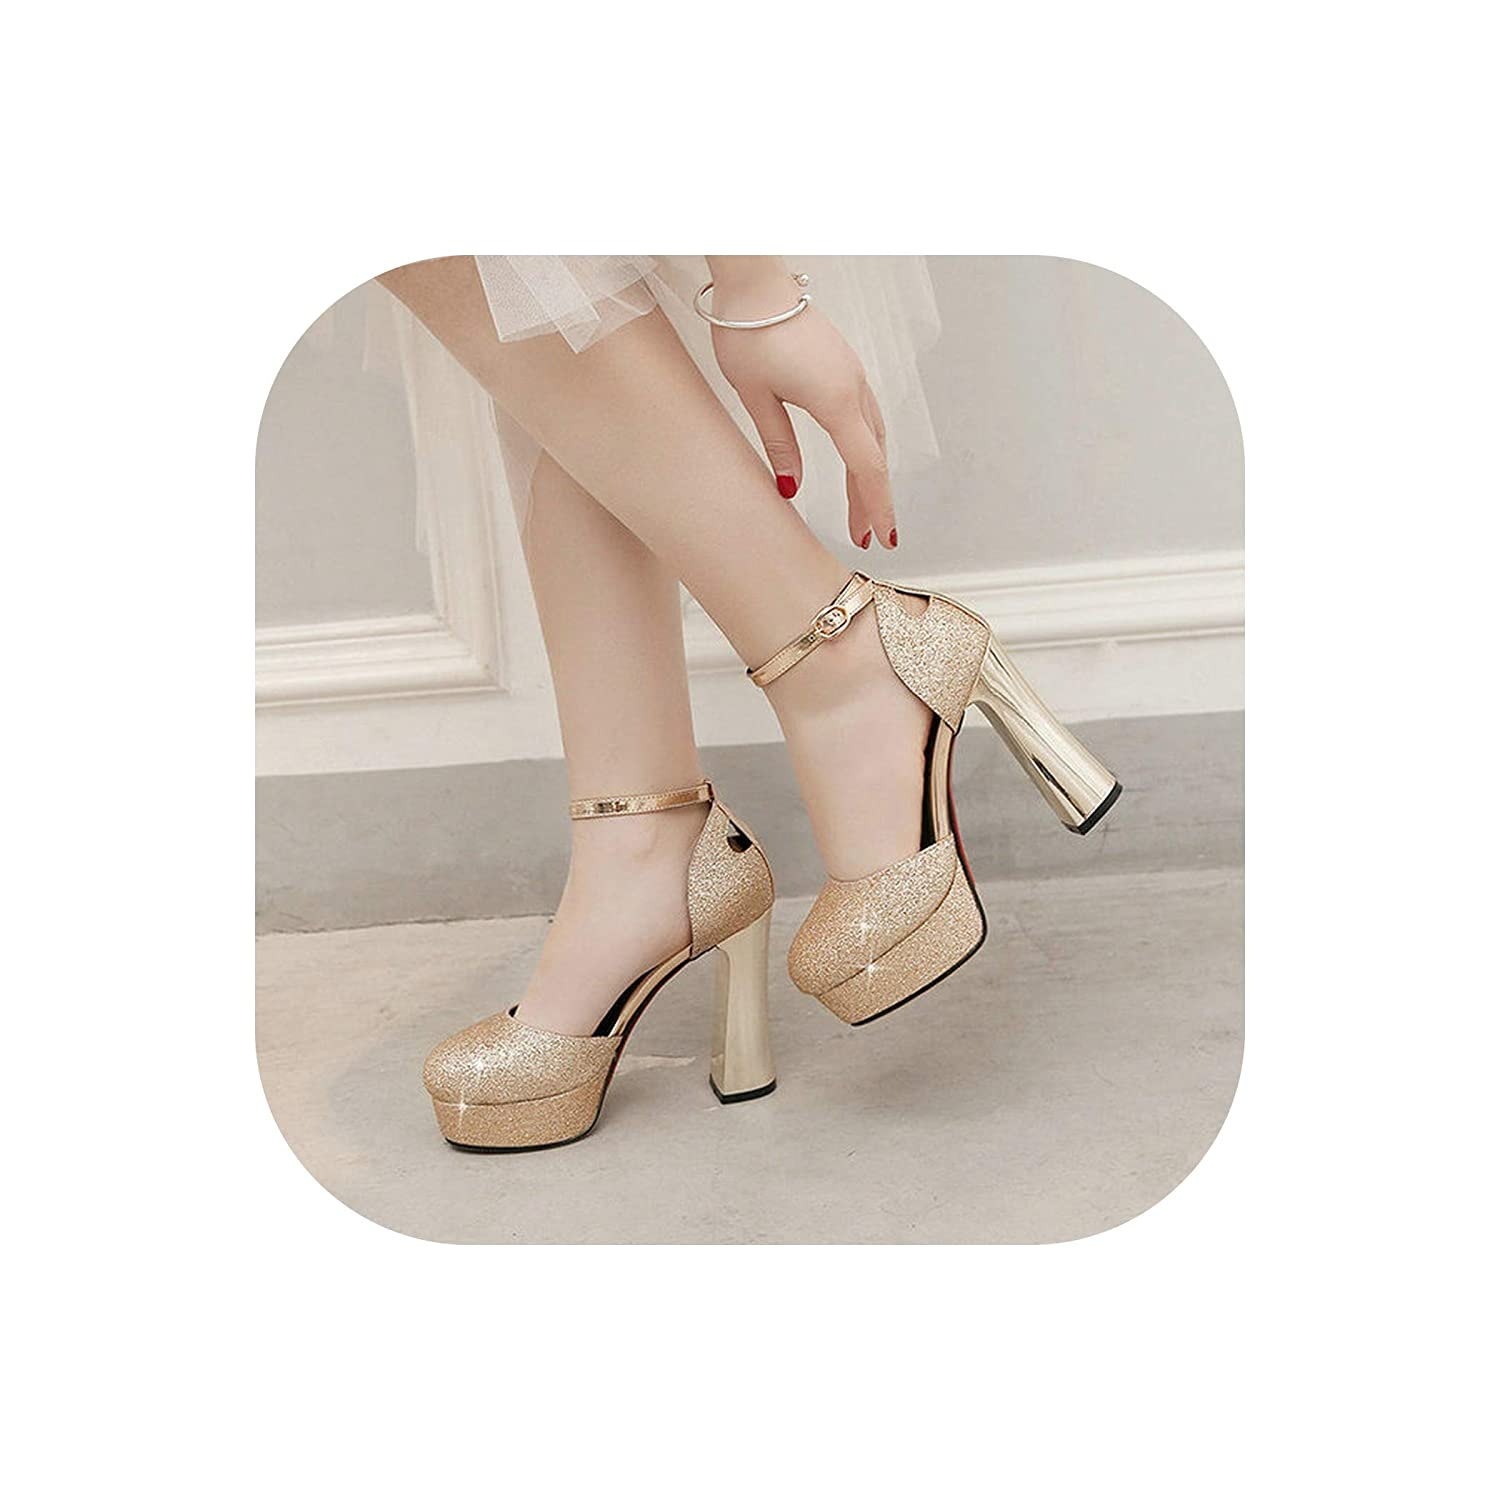 8b59289fd Amazon.com | Summer Sandals High Heels Women Platform Shoes Fashion  Sequined Super High Heels Pumps Gold Silver Red Sole Party Shoes, Gold, 10  | Shoes